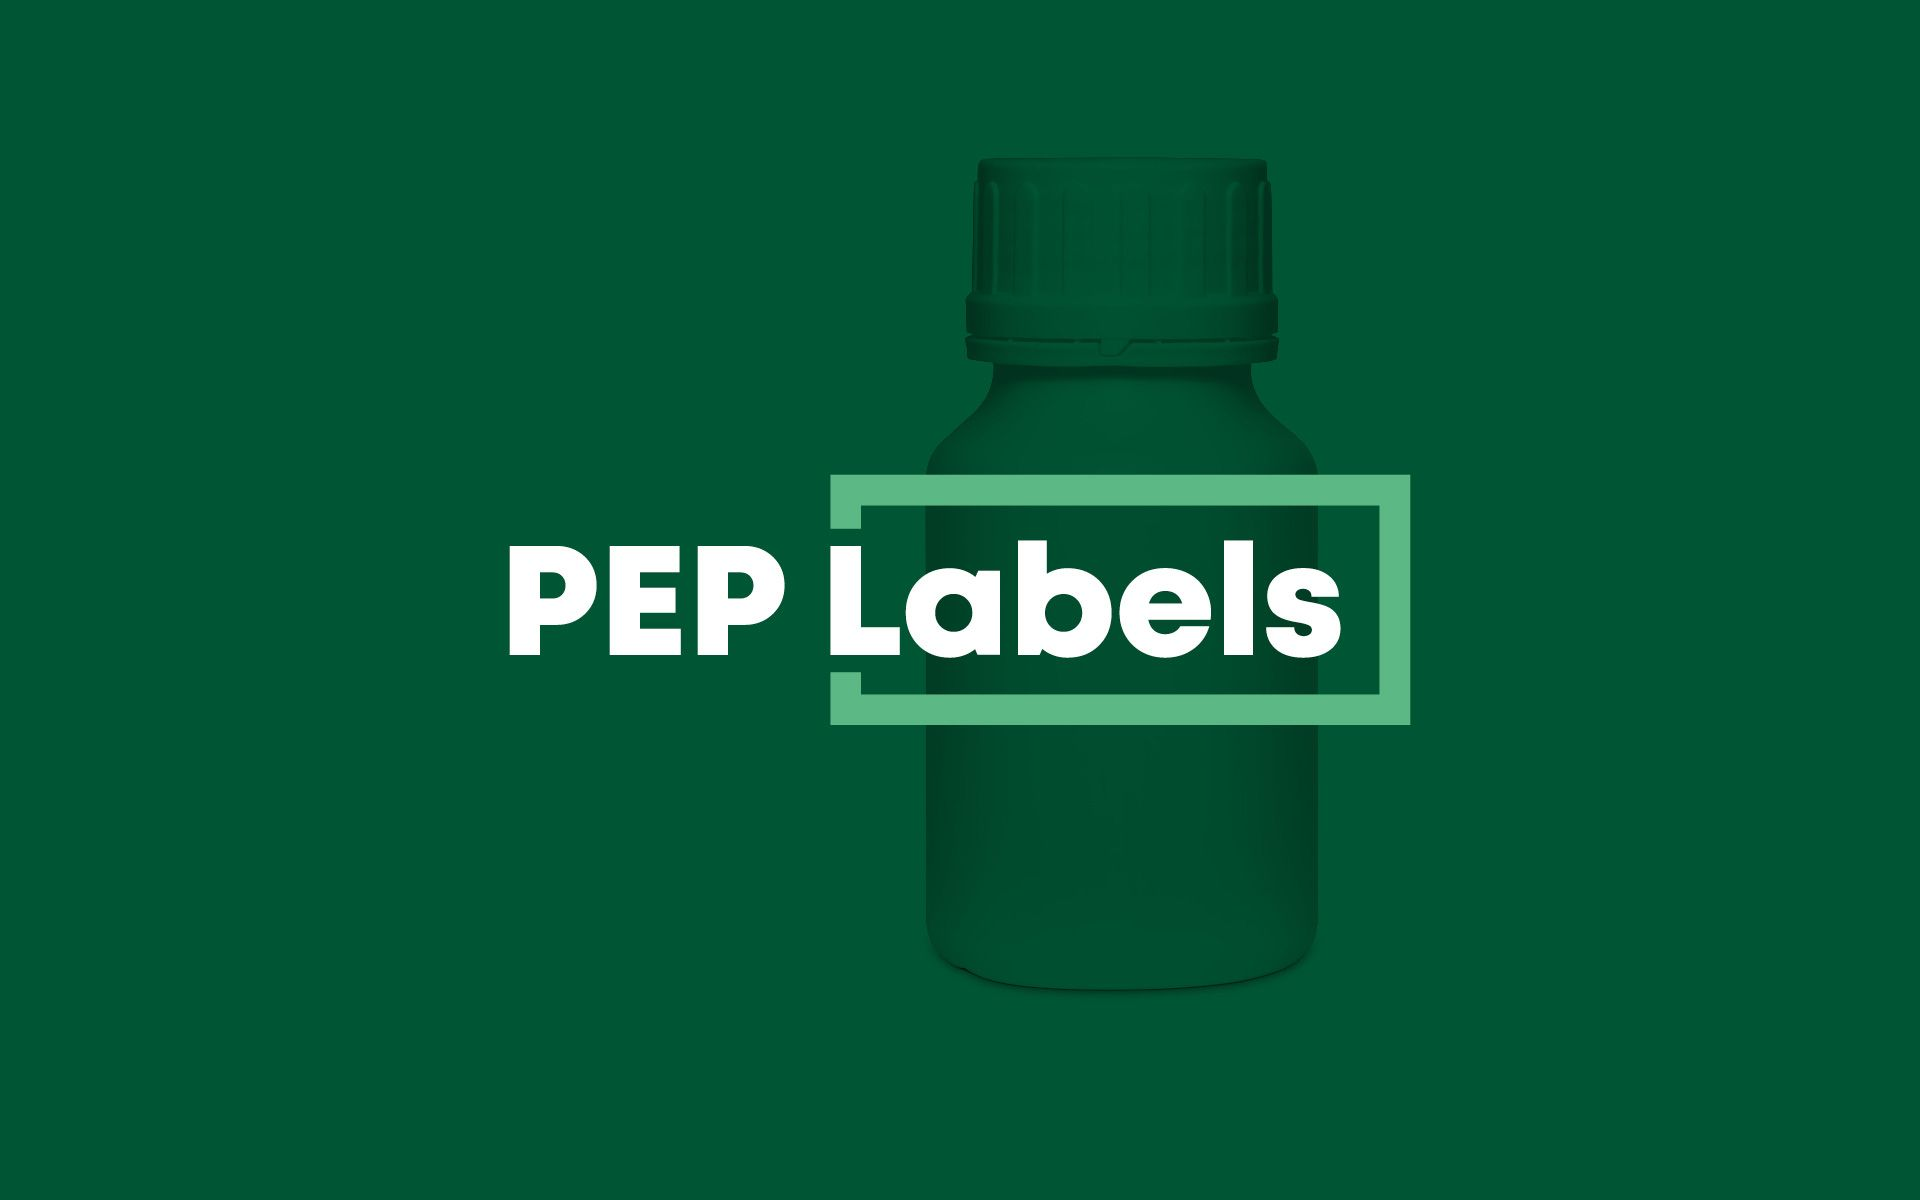 PEP Labels AG, Branding, Corporate Design, Branding Elements